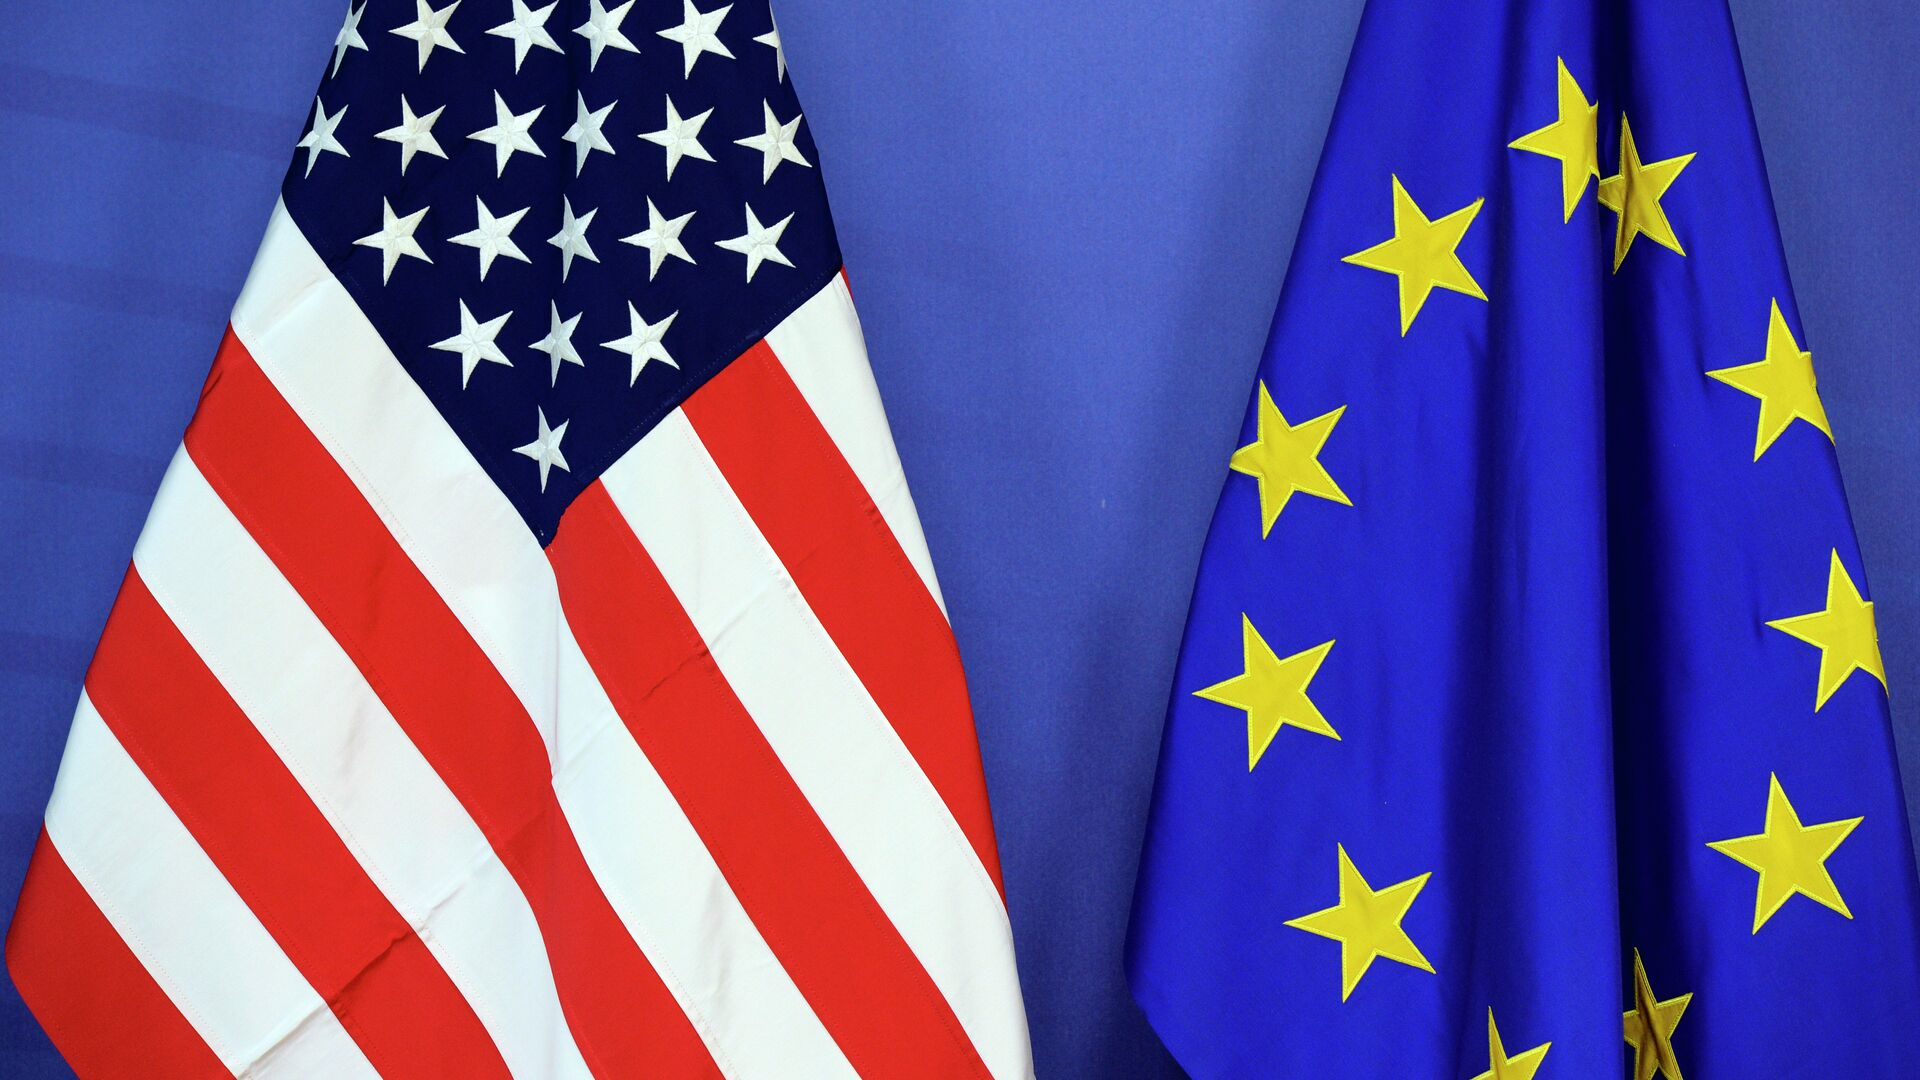 The US national flag (L) and the flag of the European Union are placed side-by-side during the Transatlantic Trade and Investment Partnership (TTIP) meeting at the European Union Commission headquarter in Brussels, on July 13, 2015 - Sputnik Mundo, 1920, 24.03.2021